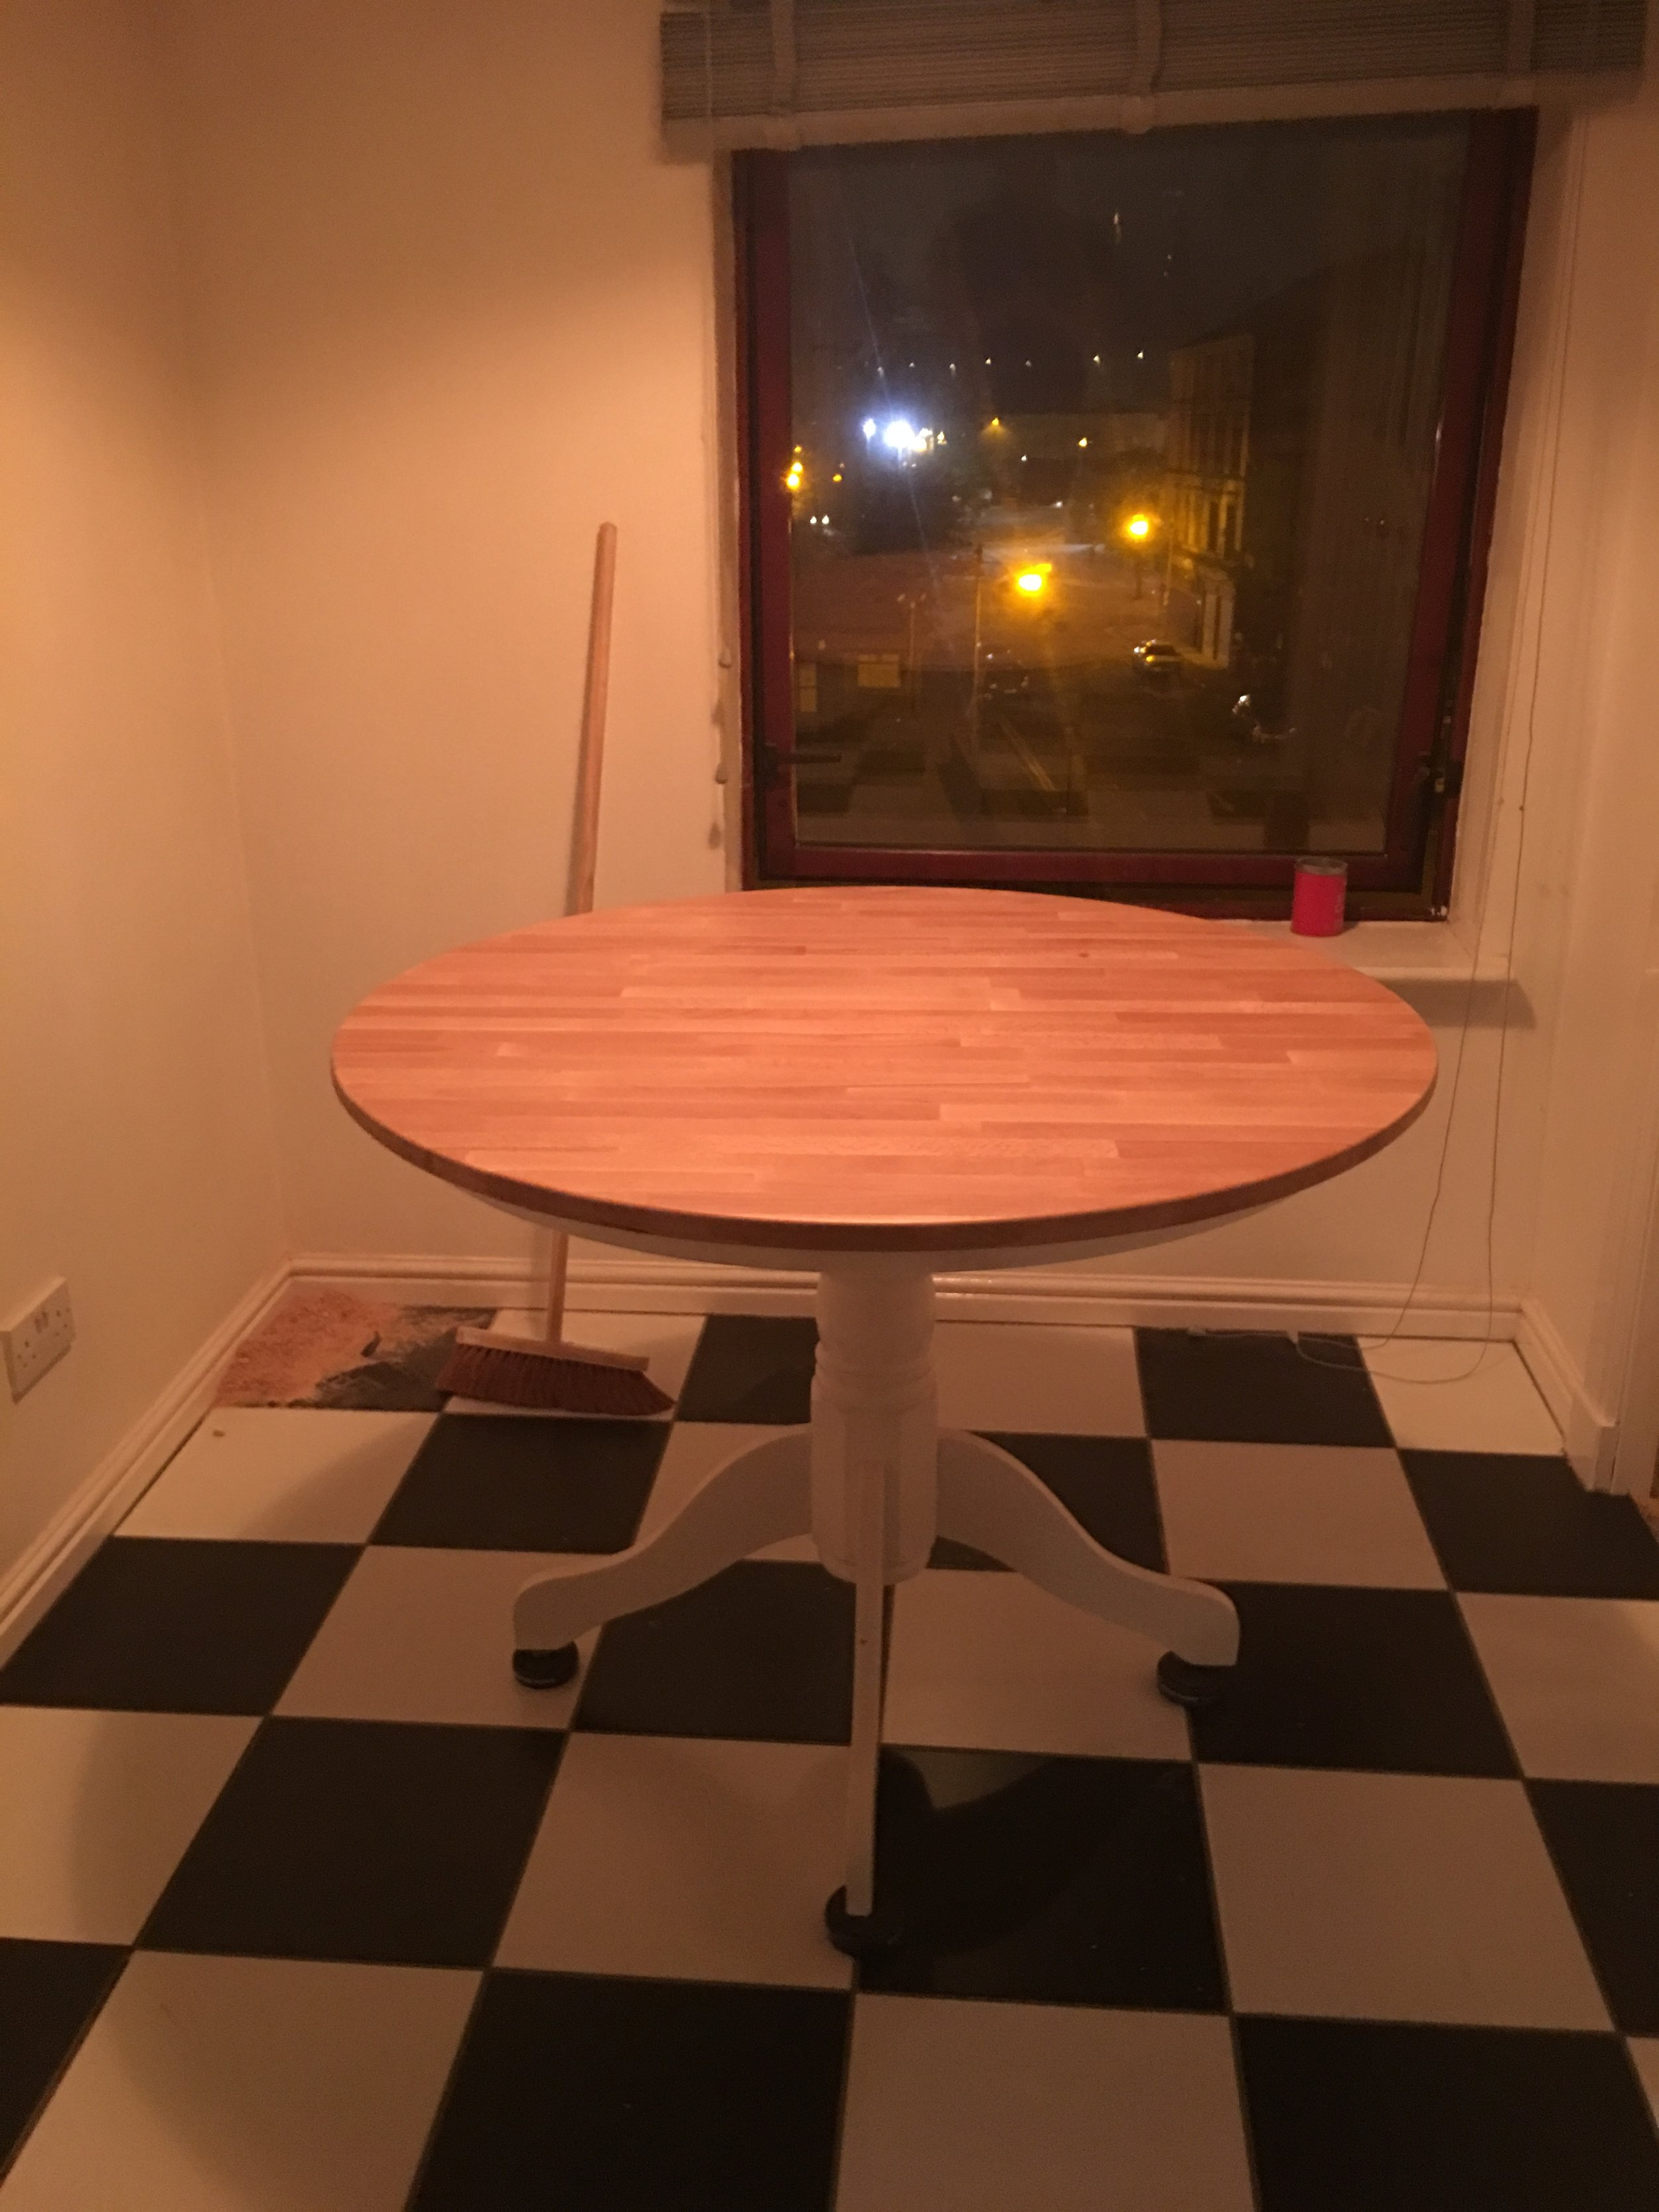 After the second coat has dried. Late at night so it would be dry by morning.